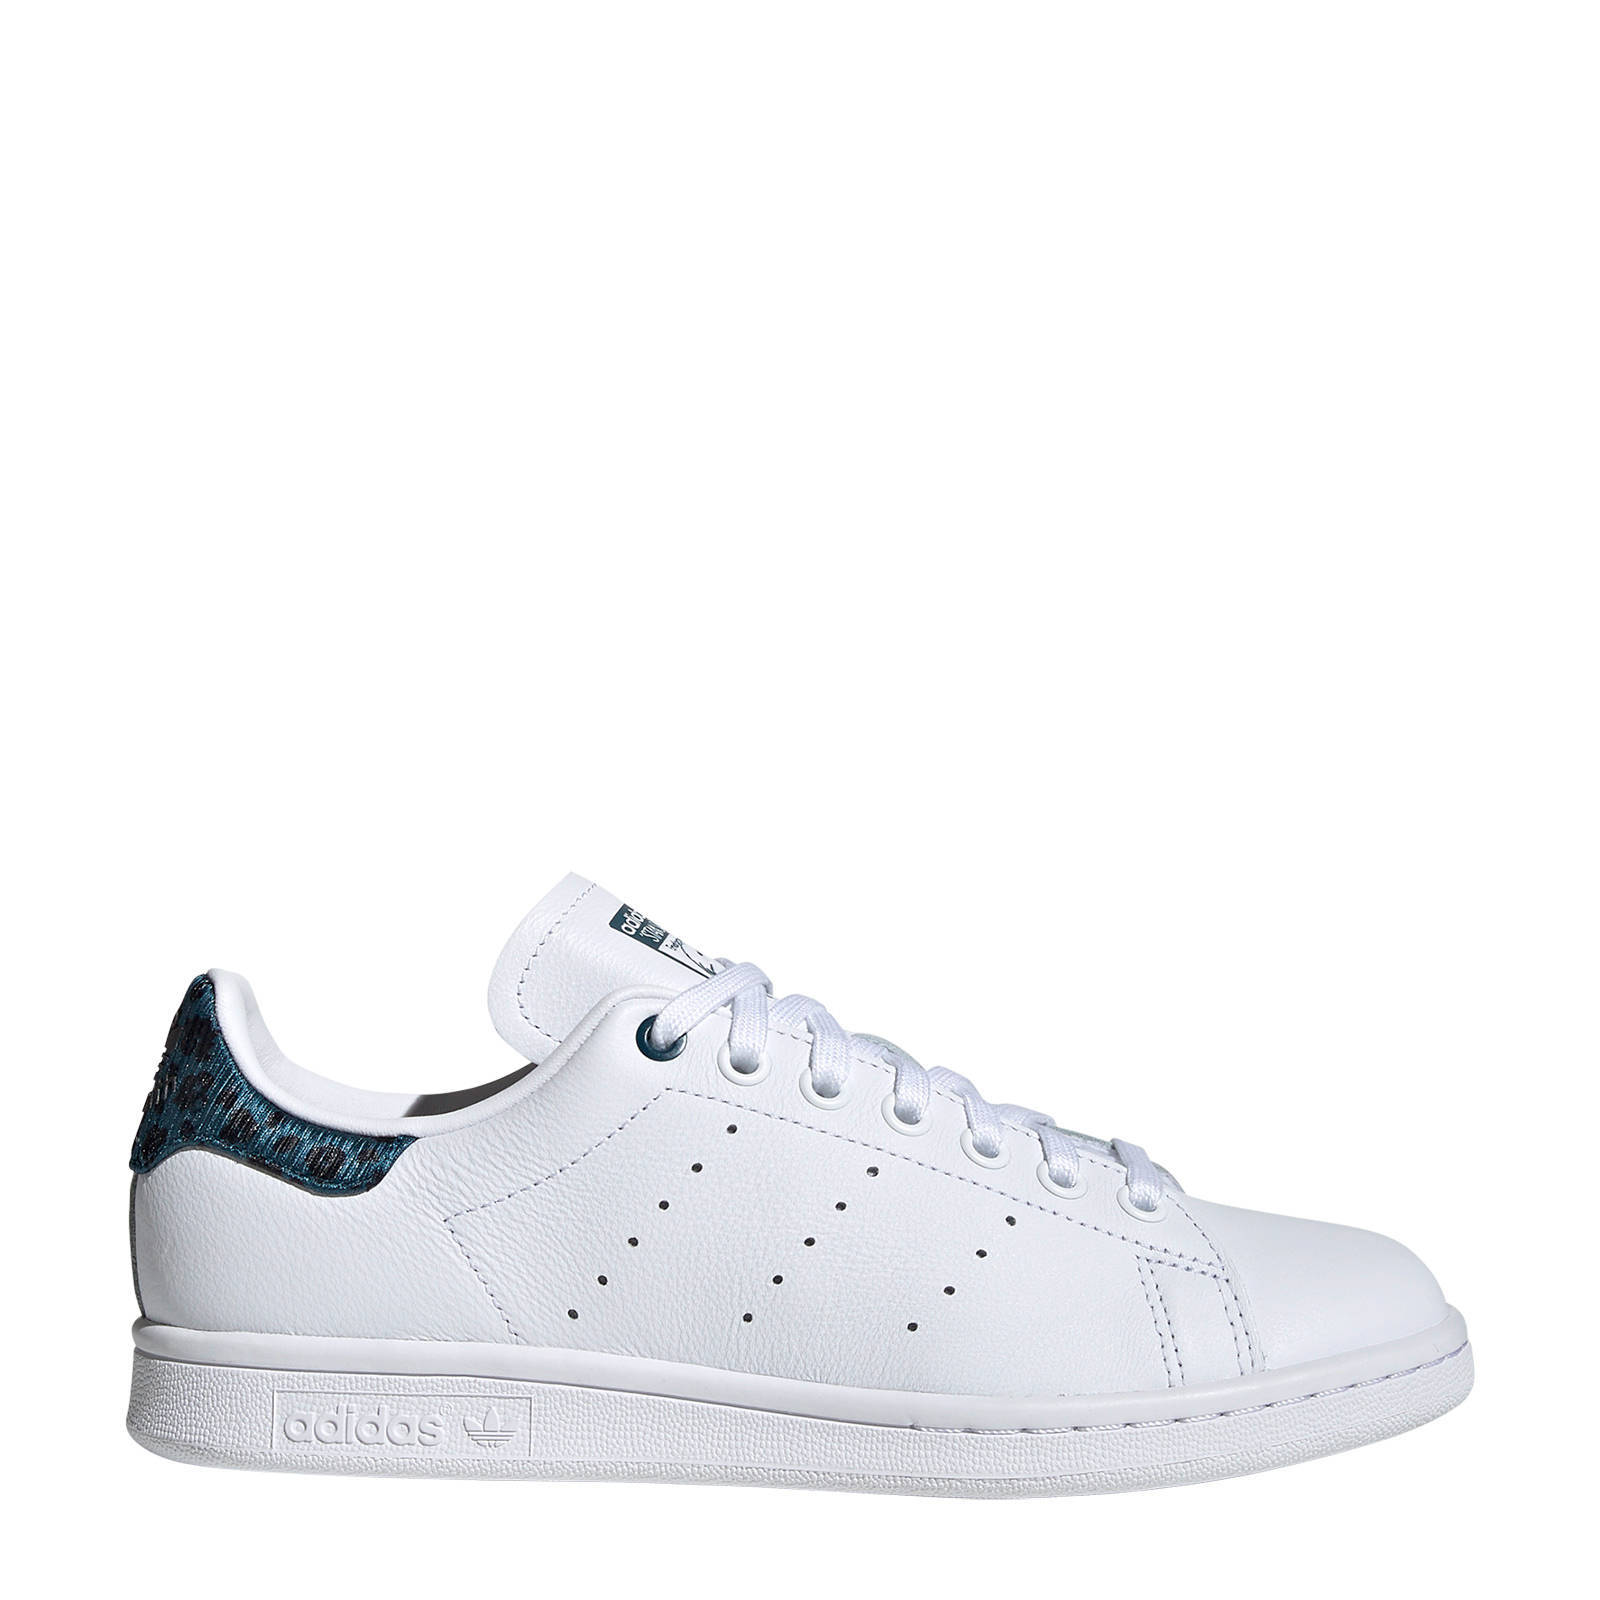 adidas Originals Stan Smith leren sneakers witblauw print